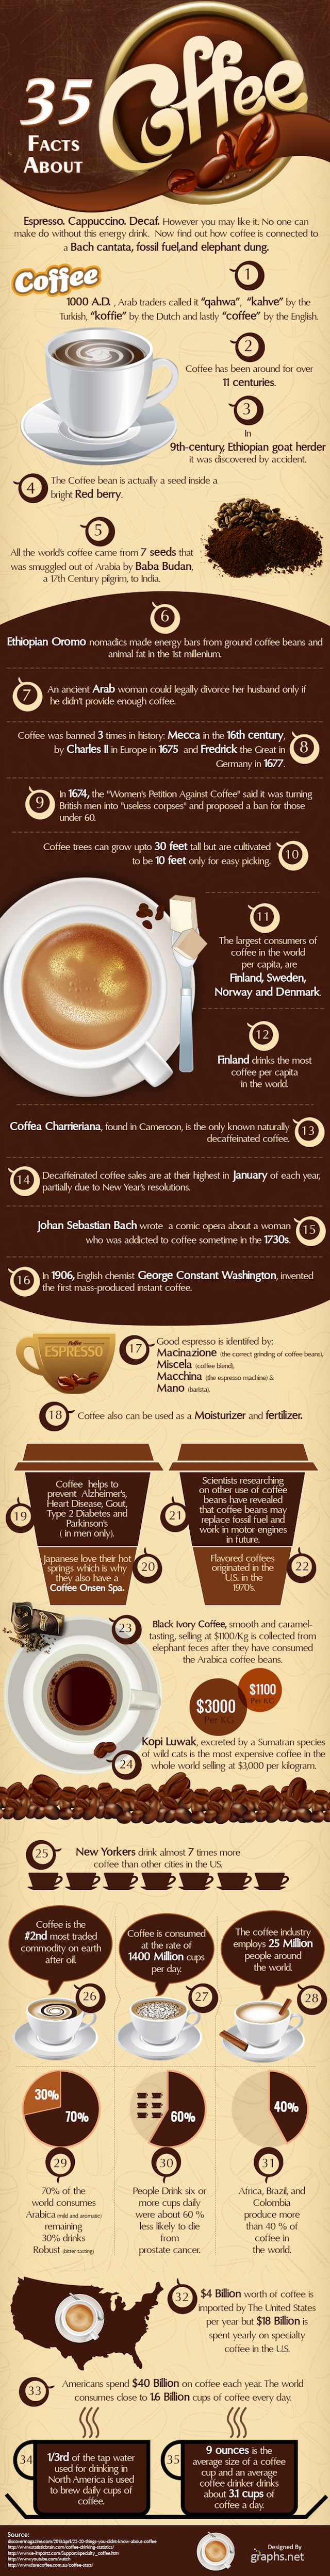 35 Unusual Facts About Coffee